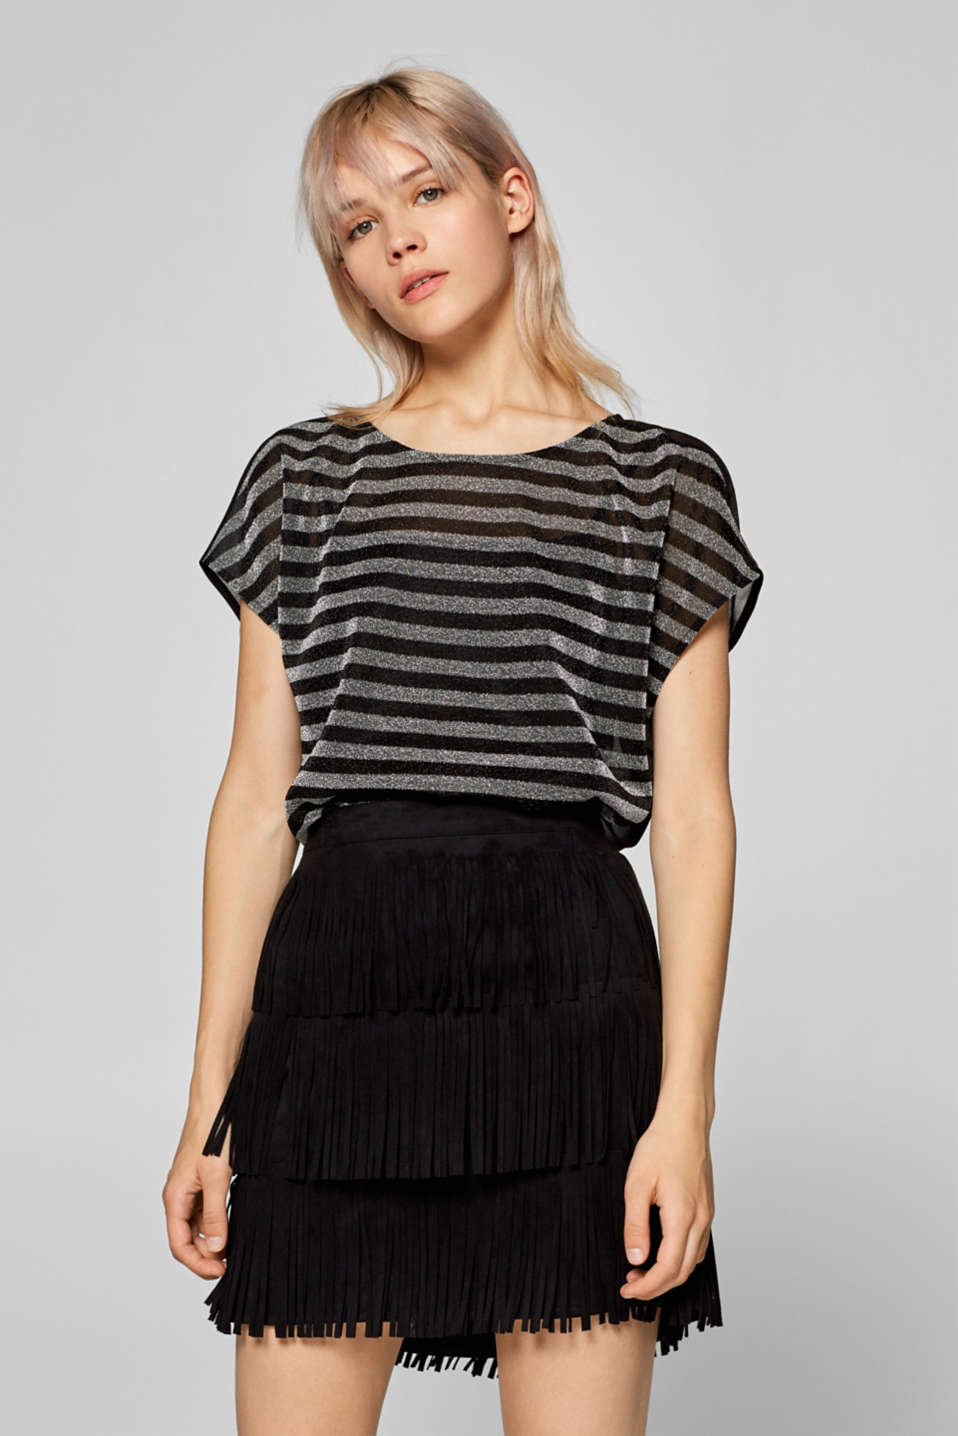 Esprit - 2-in-1 T-shirt with glittering stripes and stretch top